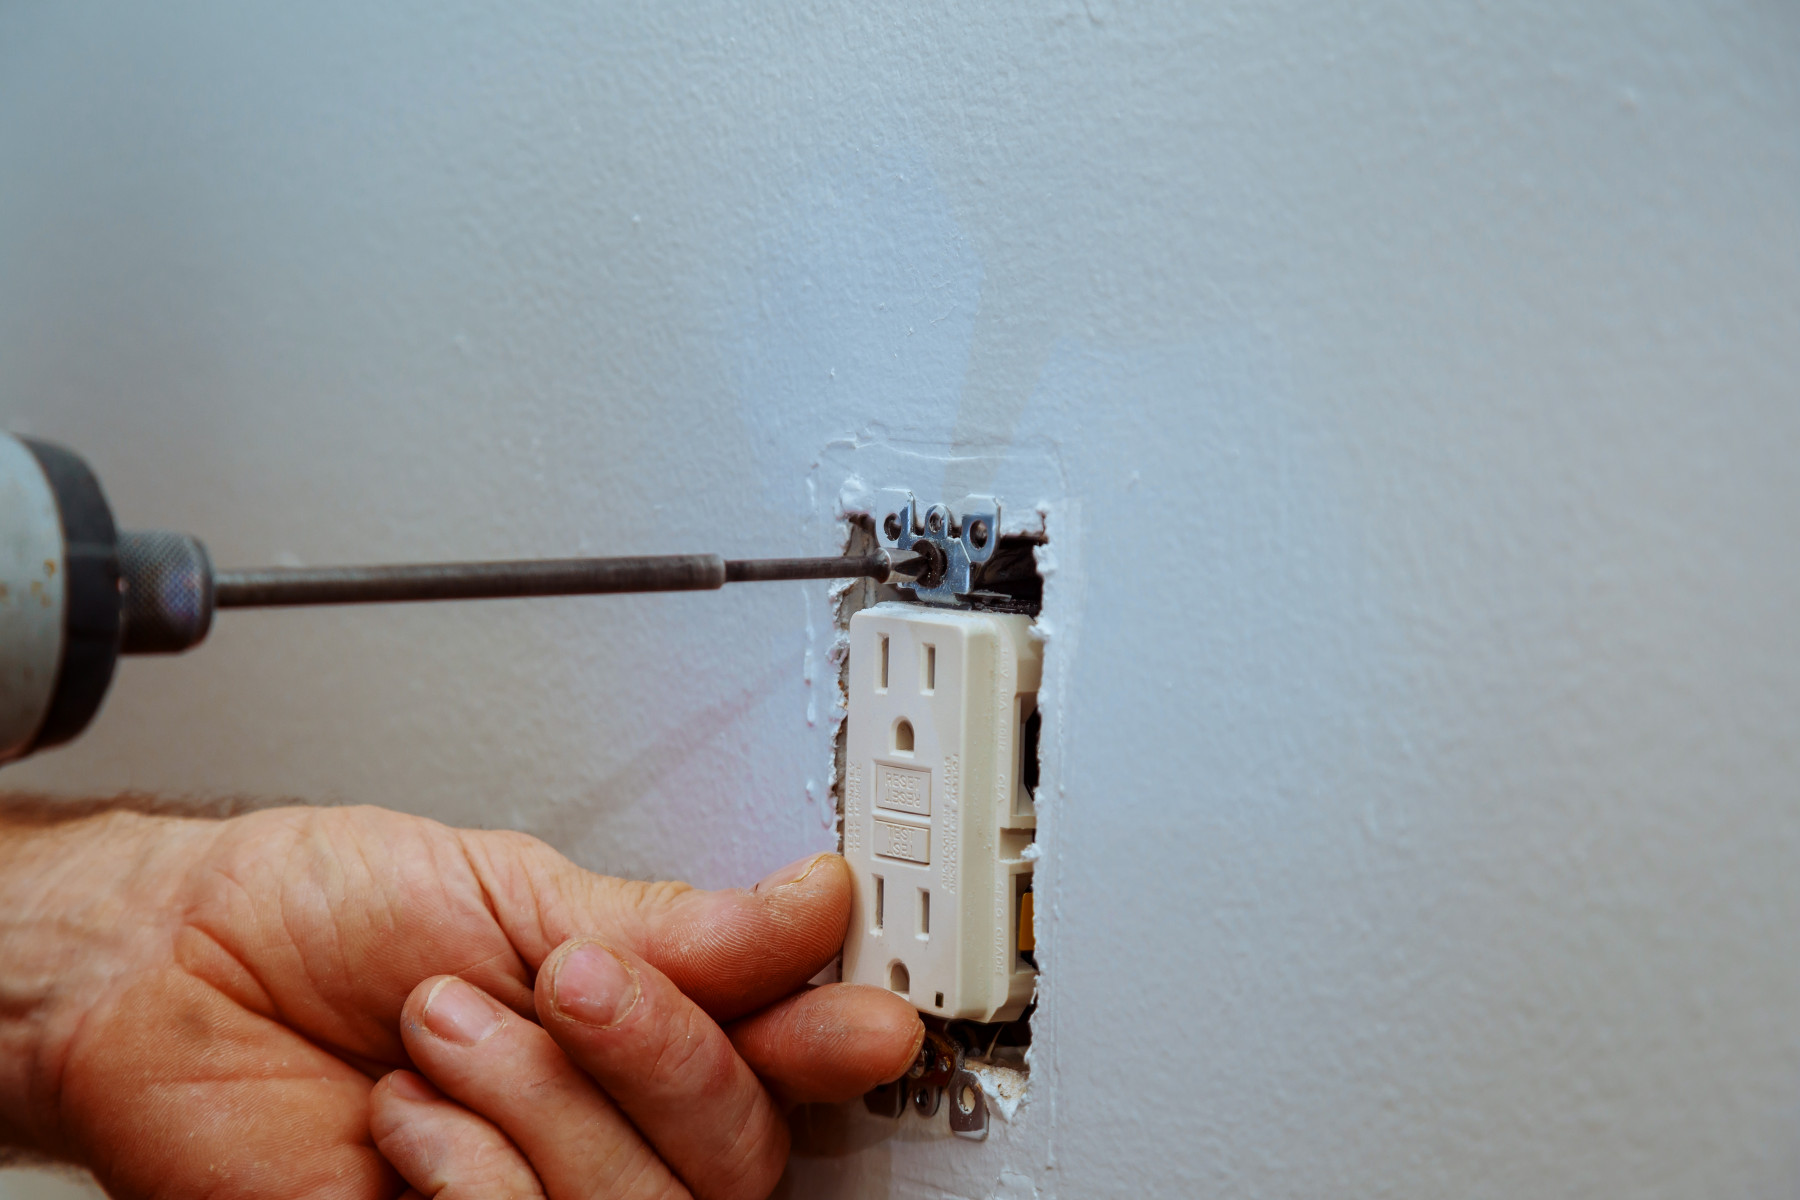 troubleshooting electrical outlet - Tim Kyle